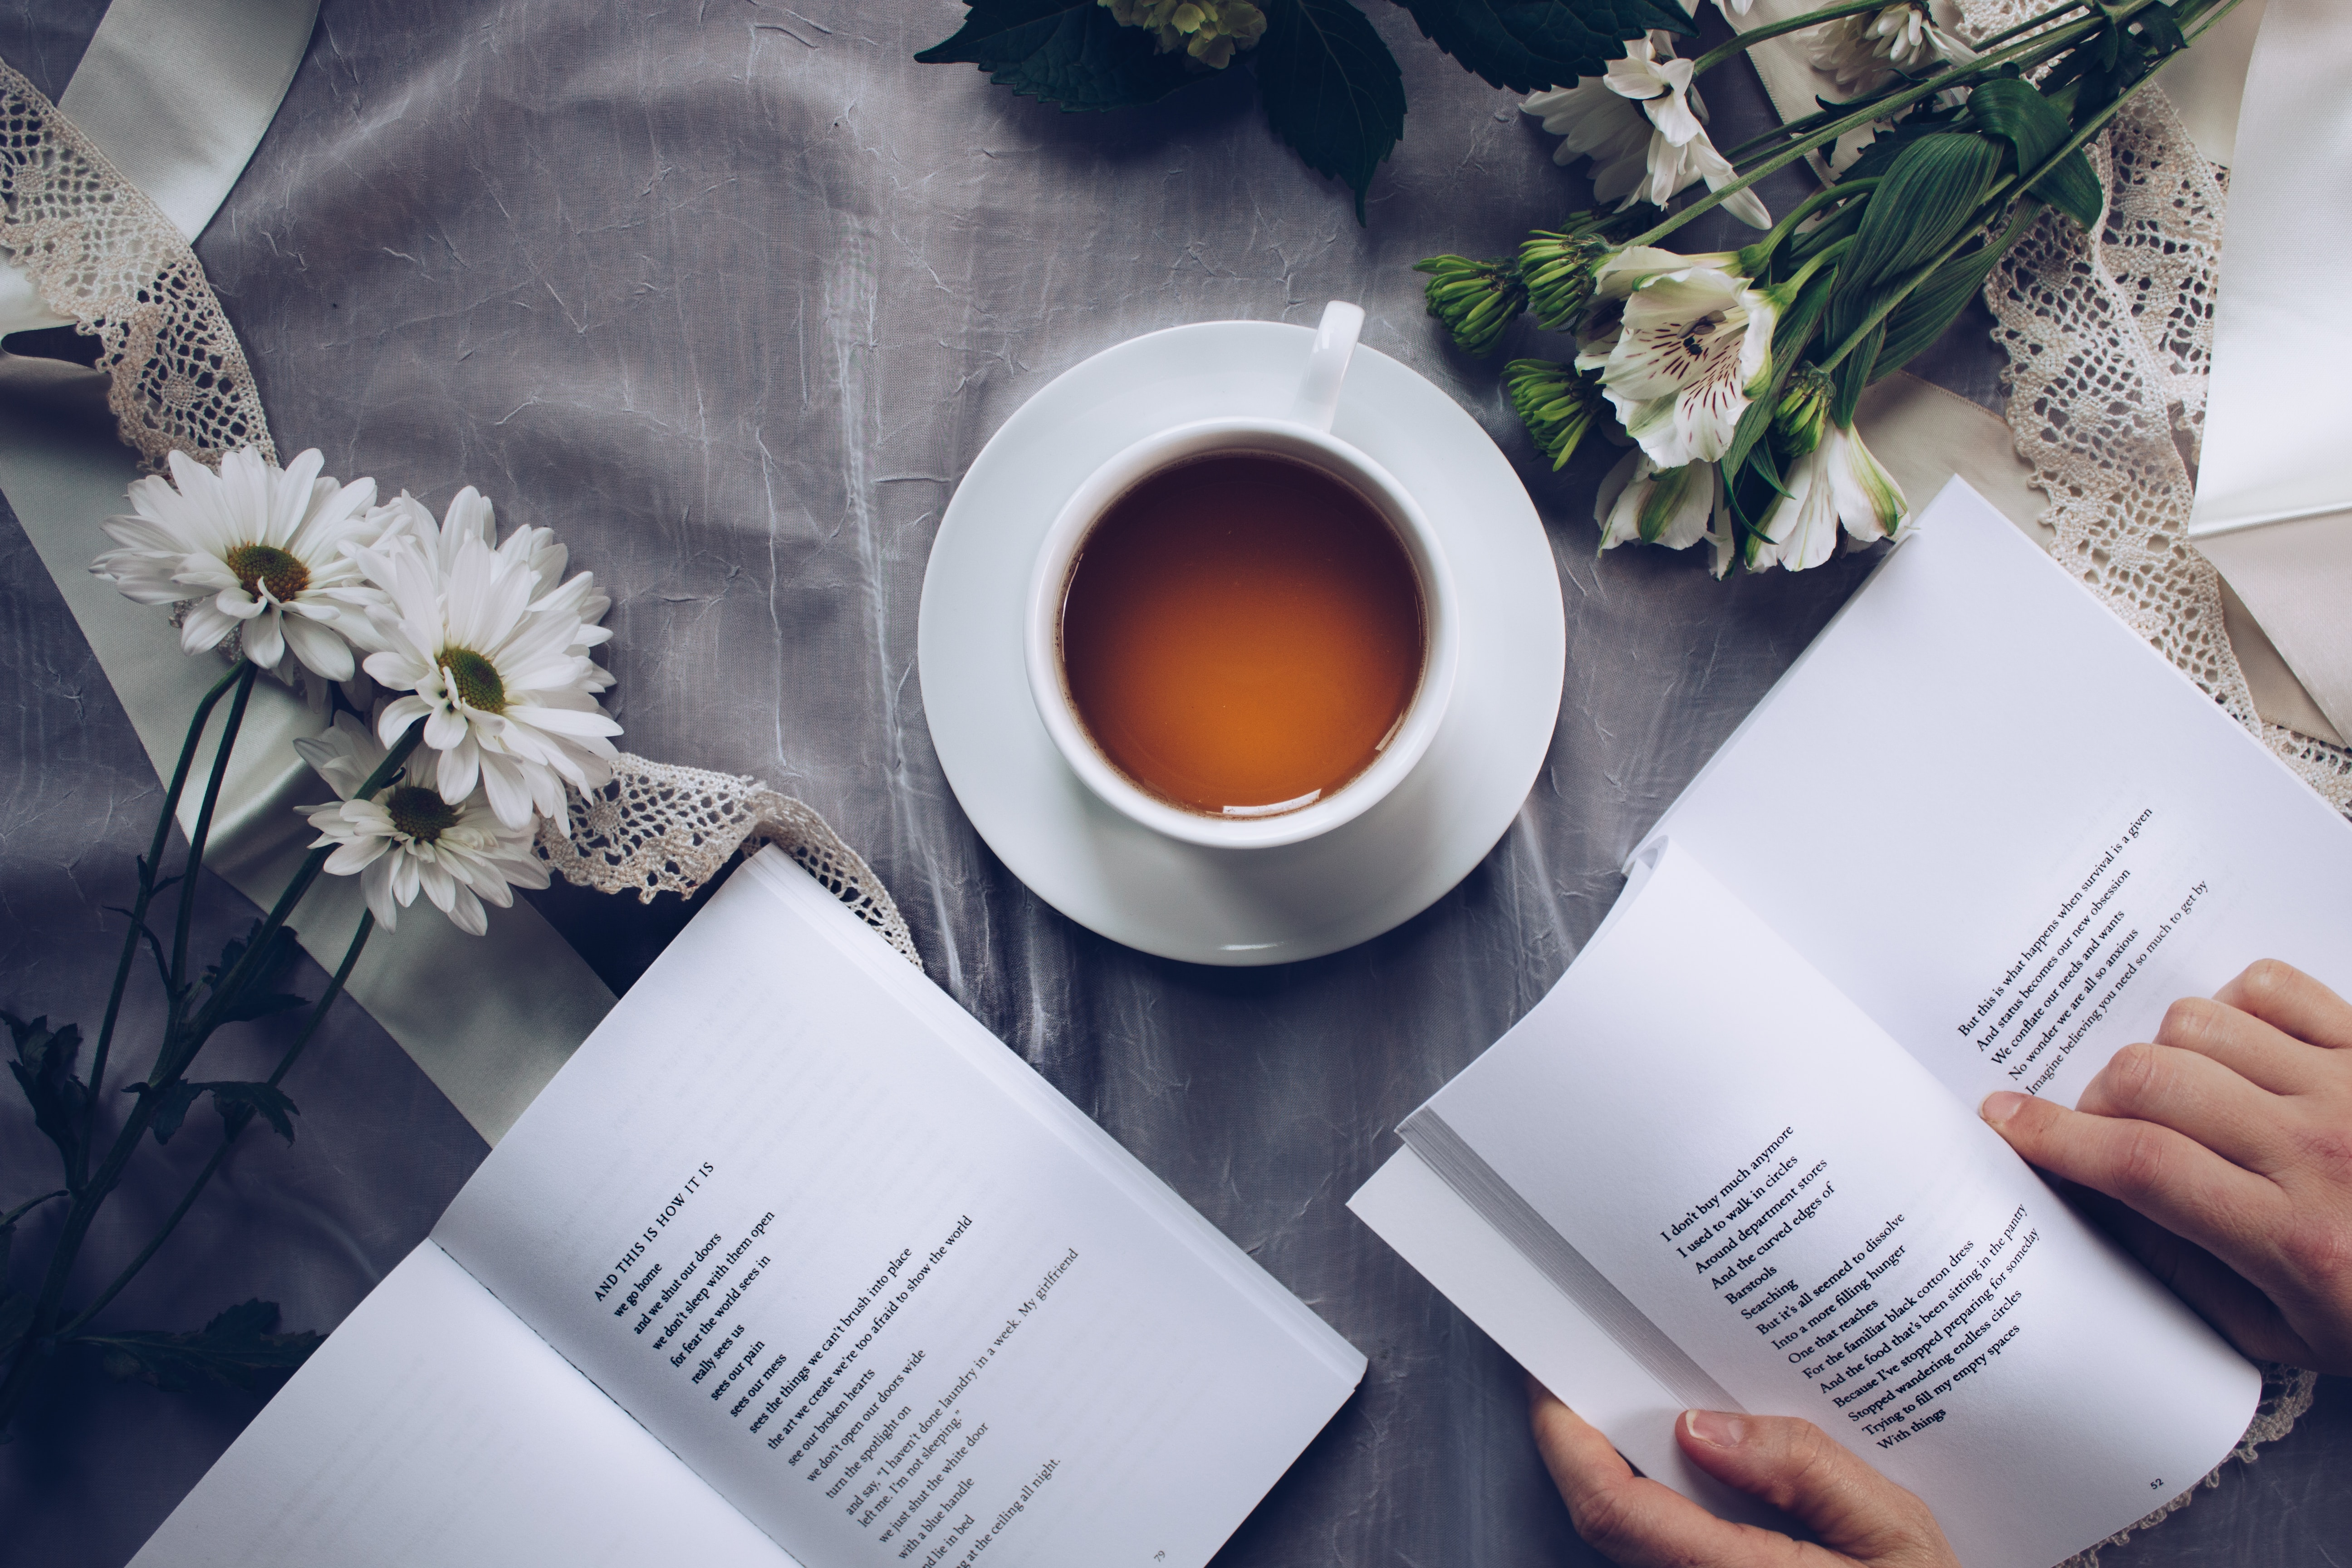 Best Tea for Stress and Depression in 2019